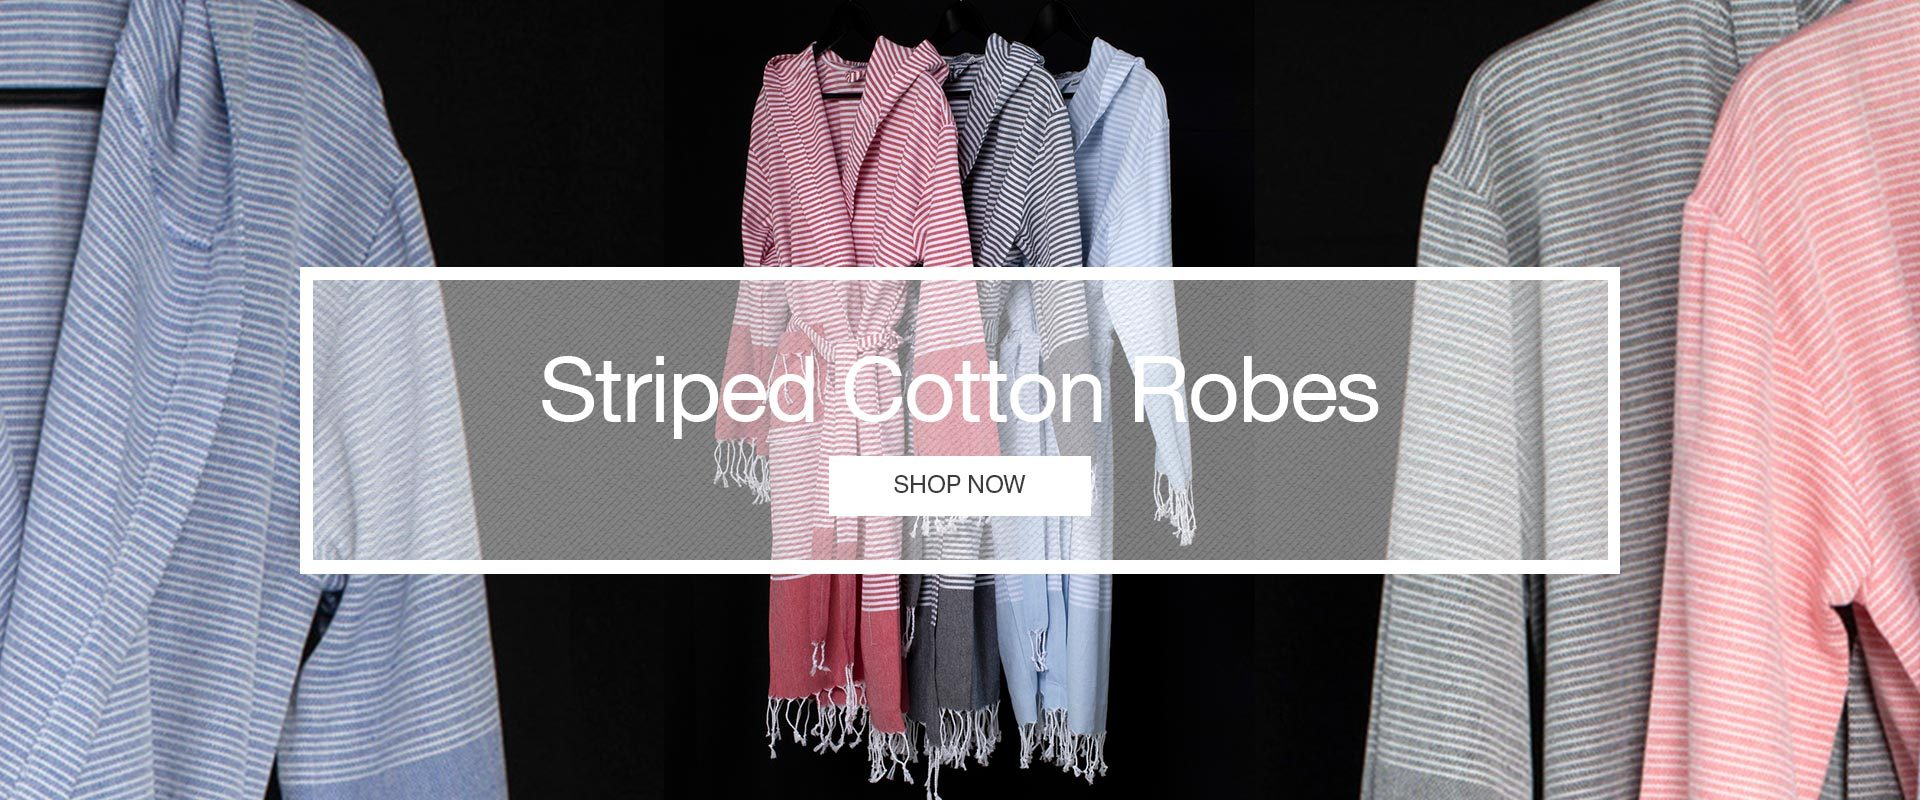 Striped Cotton Robes